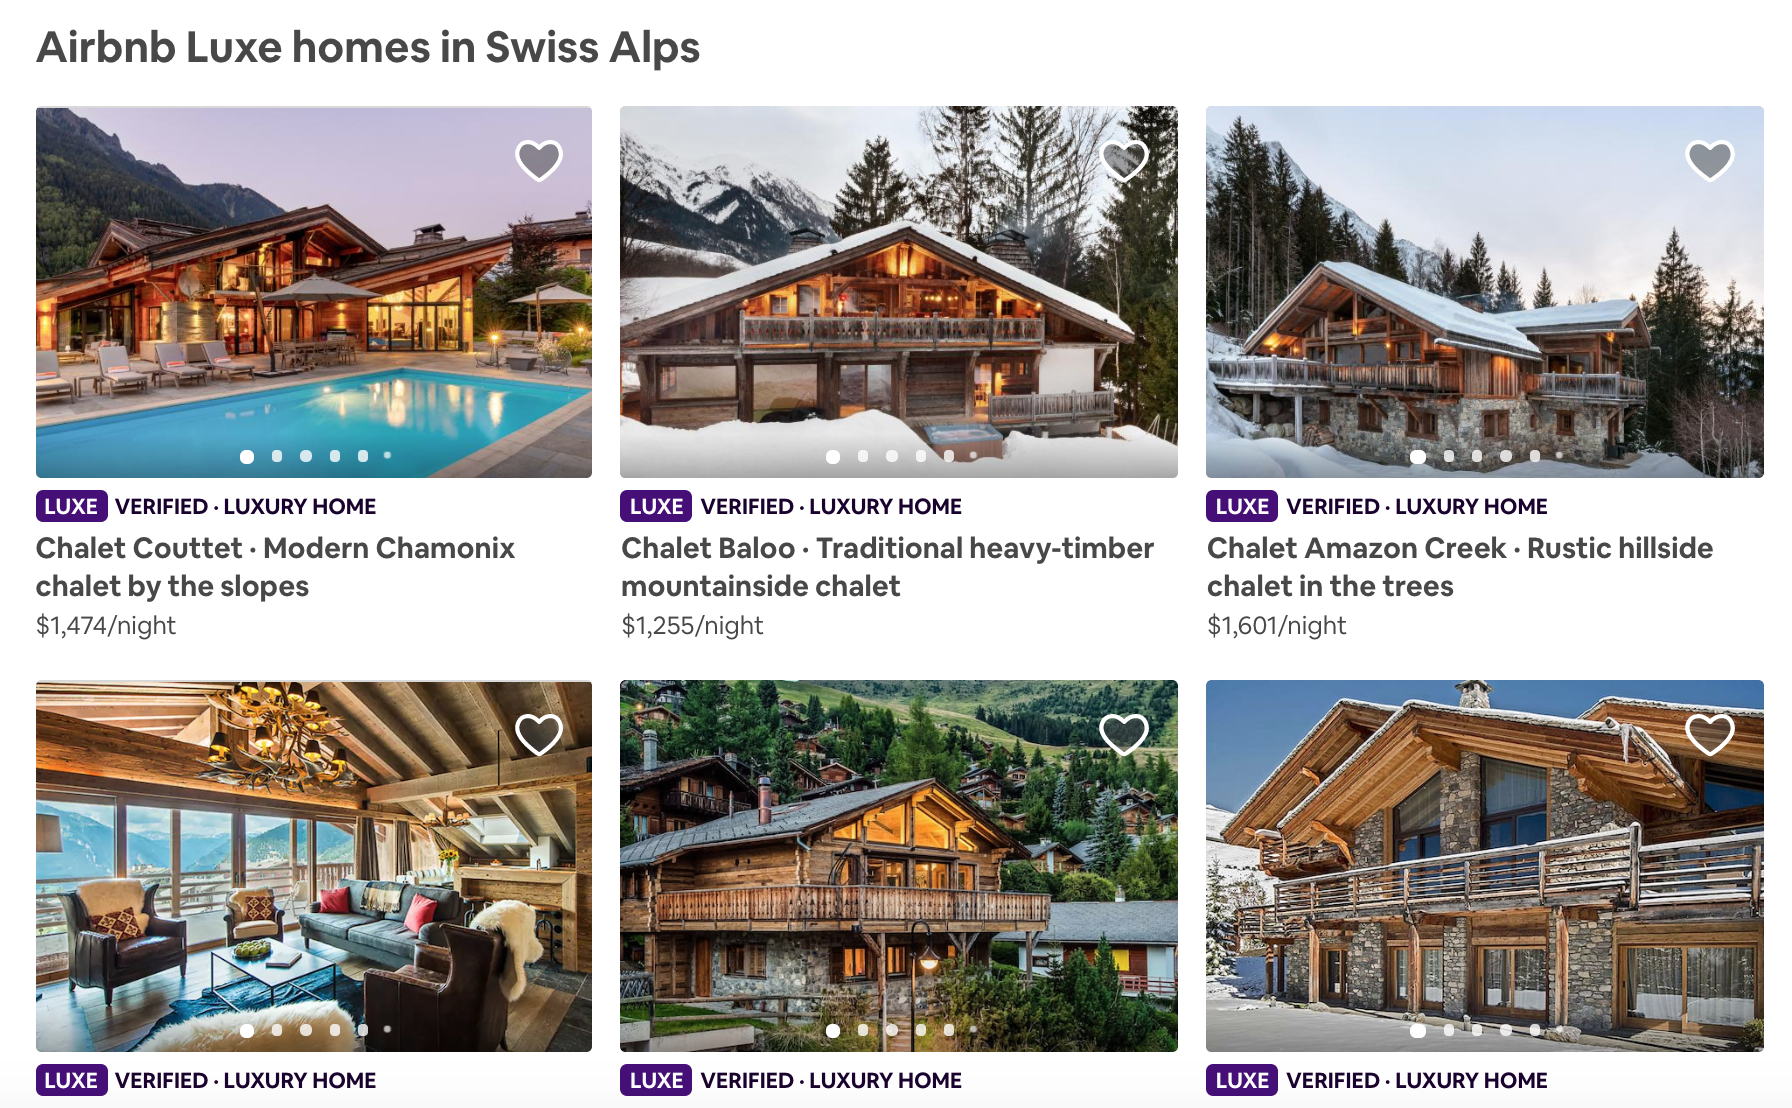 Airbnb Launches New Luxury Service For High-End Properties